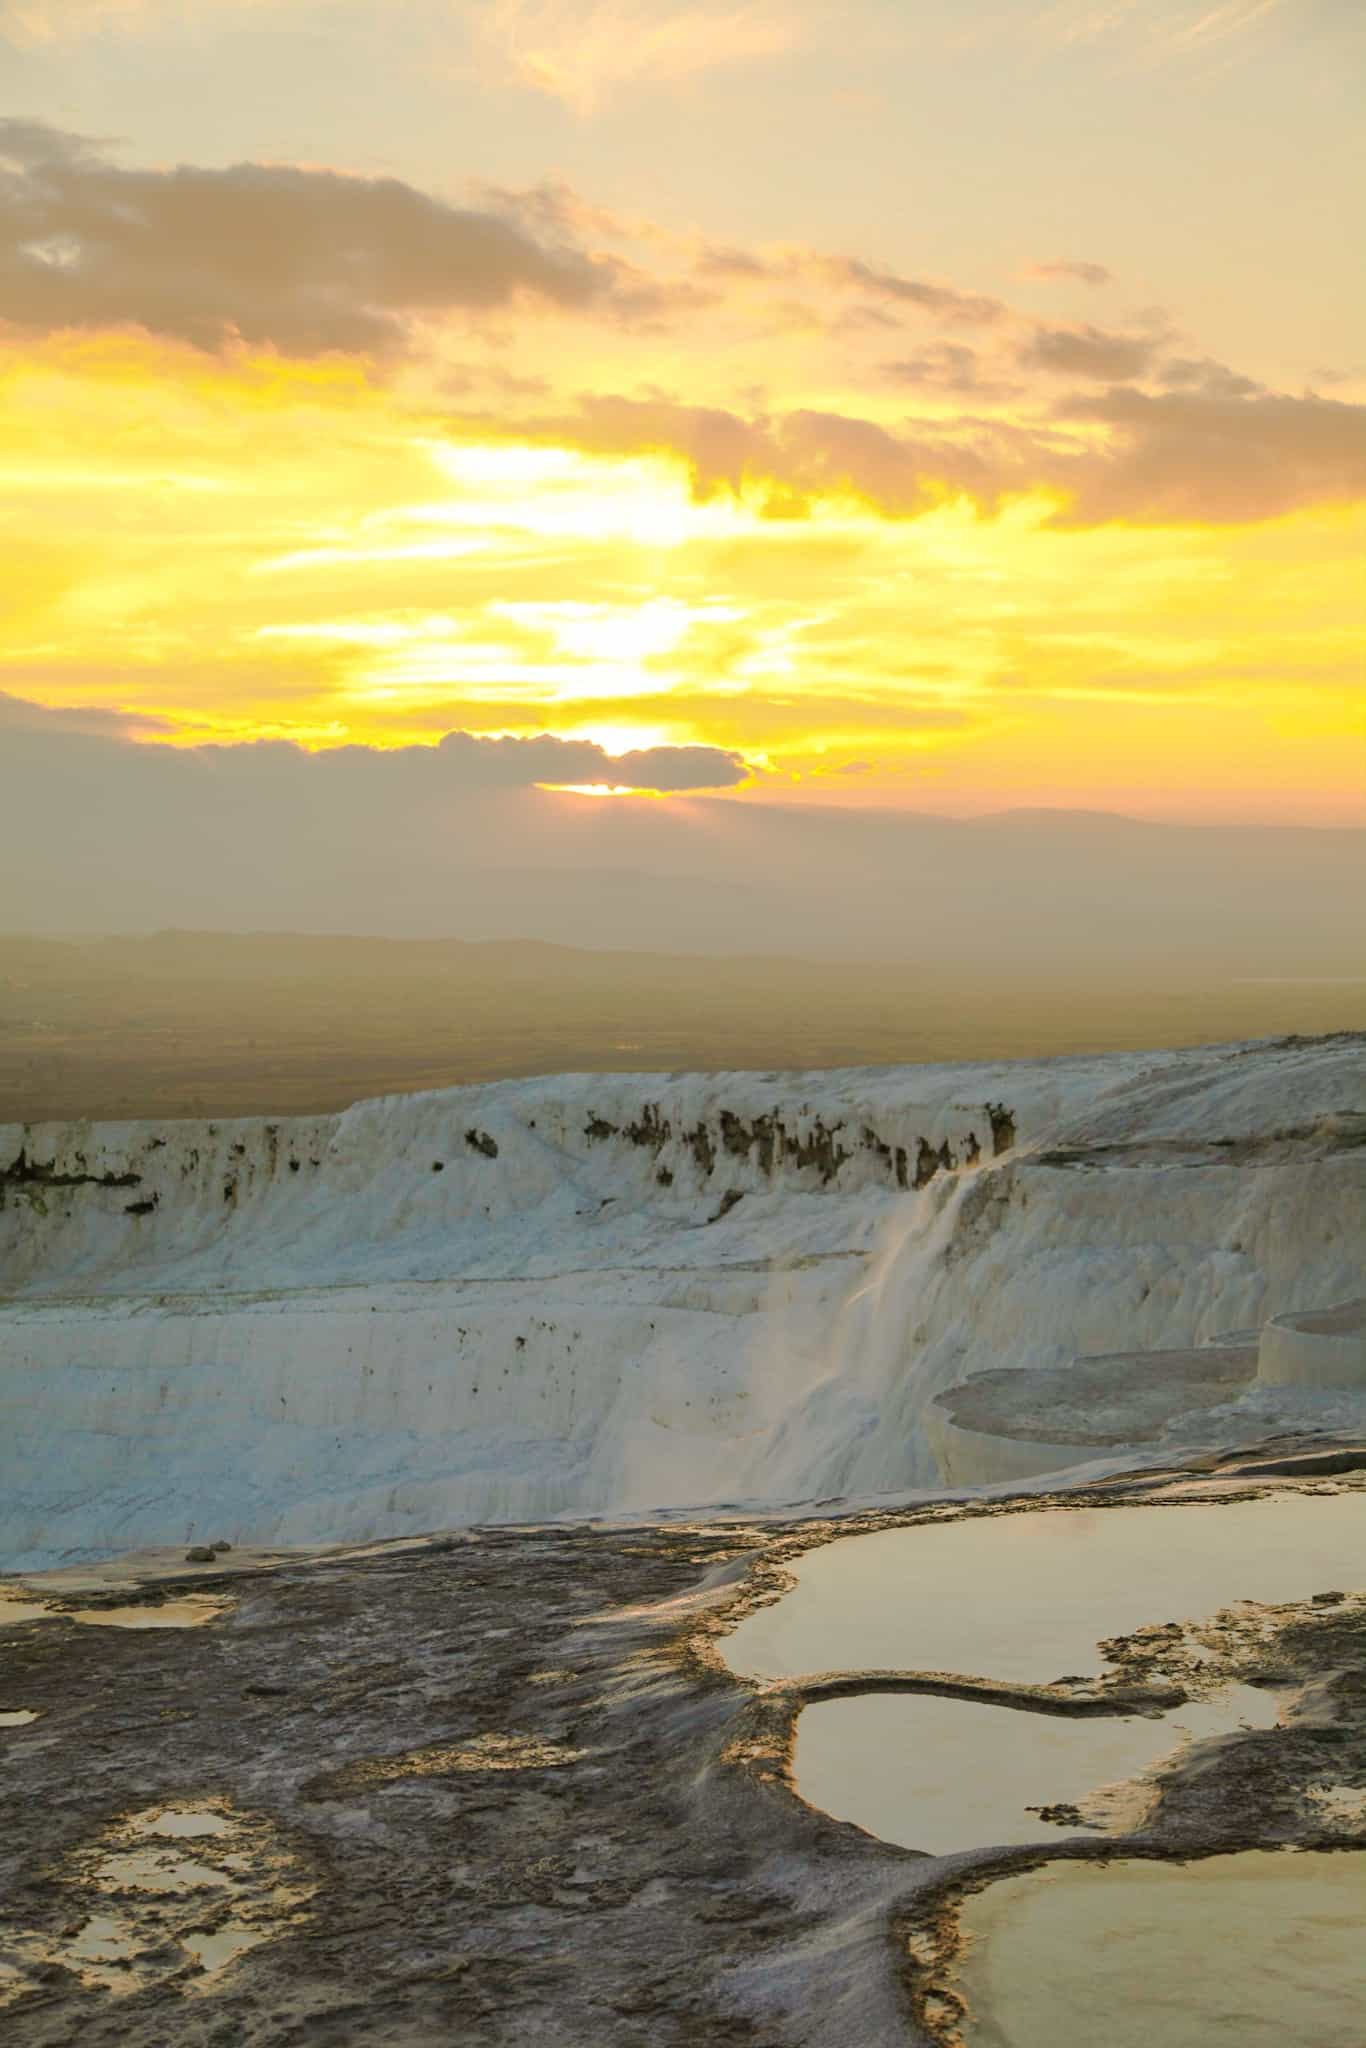 Pamukkale, Turkey at Sunset. The World Pursuit